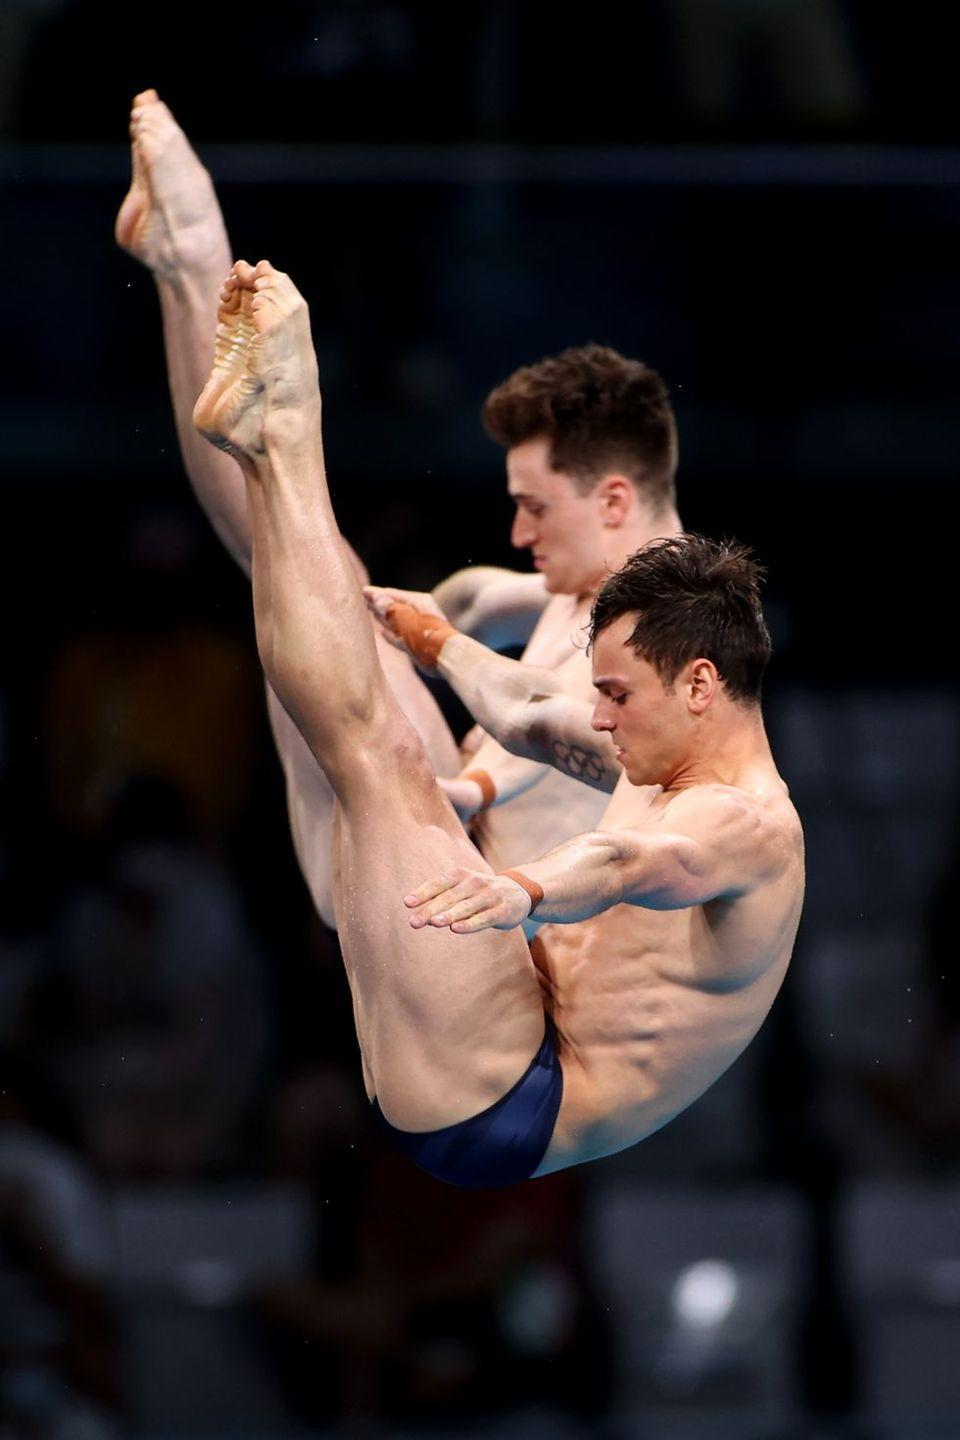 <p>English divers Tom Daley and Matty Lee perform a synchronized 10-meter platform event. The duo took home the gold for this competition.</p>